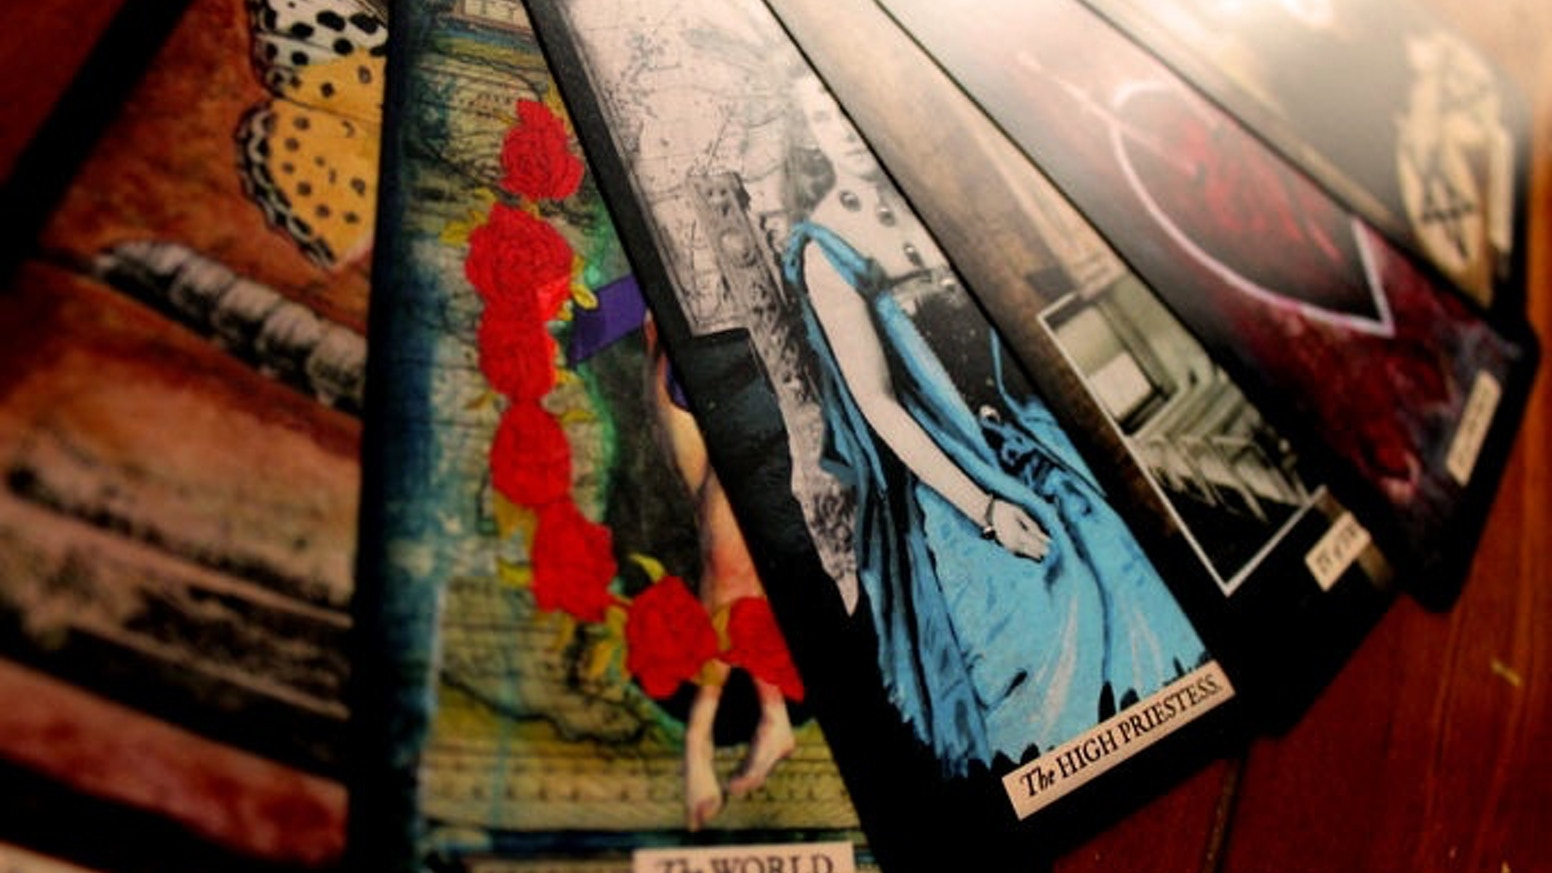 'The Stretch Tarot' is a mixed-media tarot deck by first time creator, J.E. Stretch